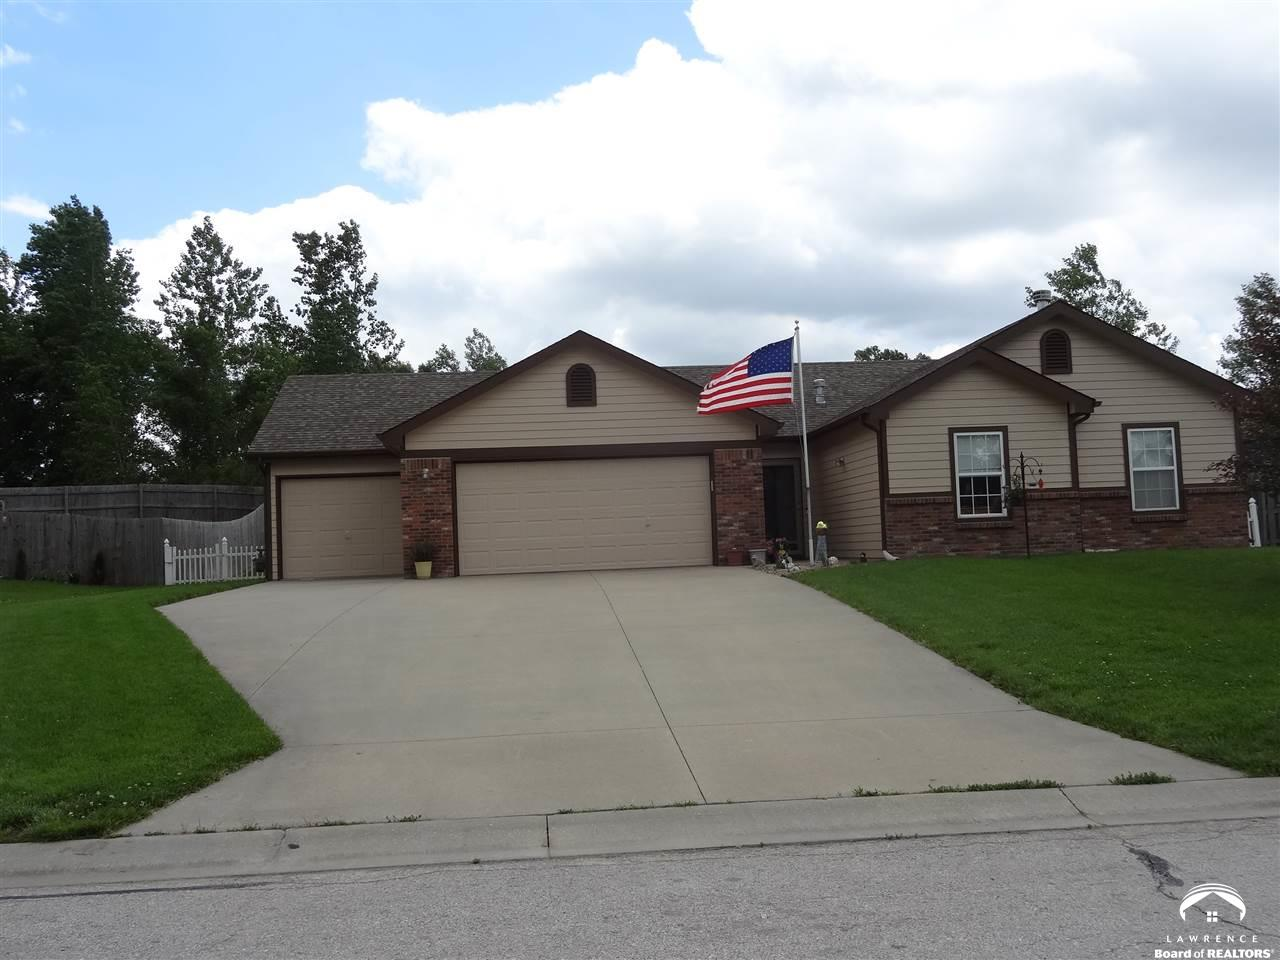 2310 Valley View Dr, Tonganoxie, KS 66086